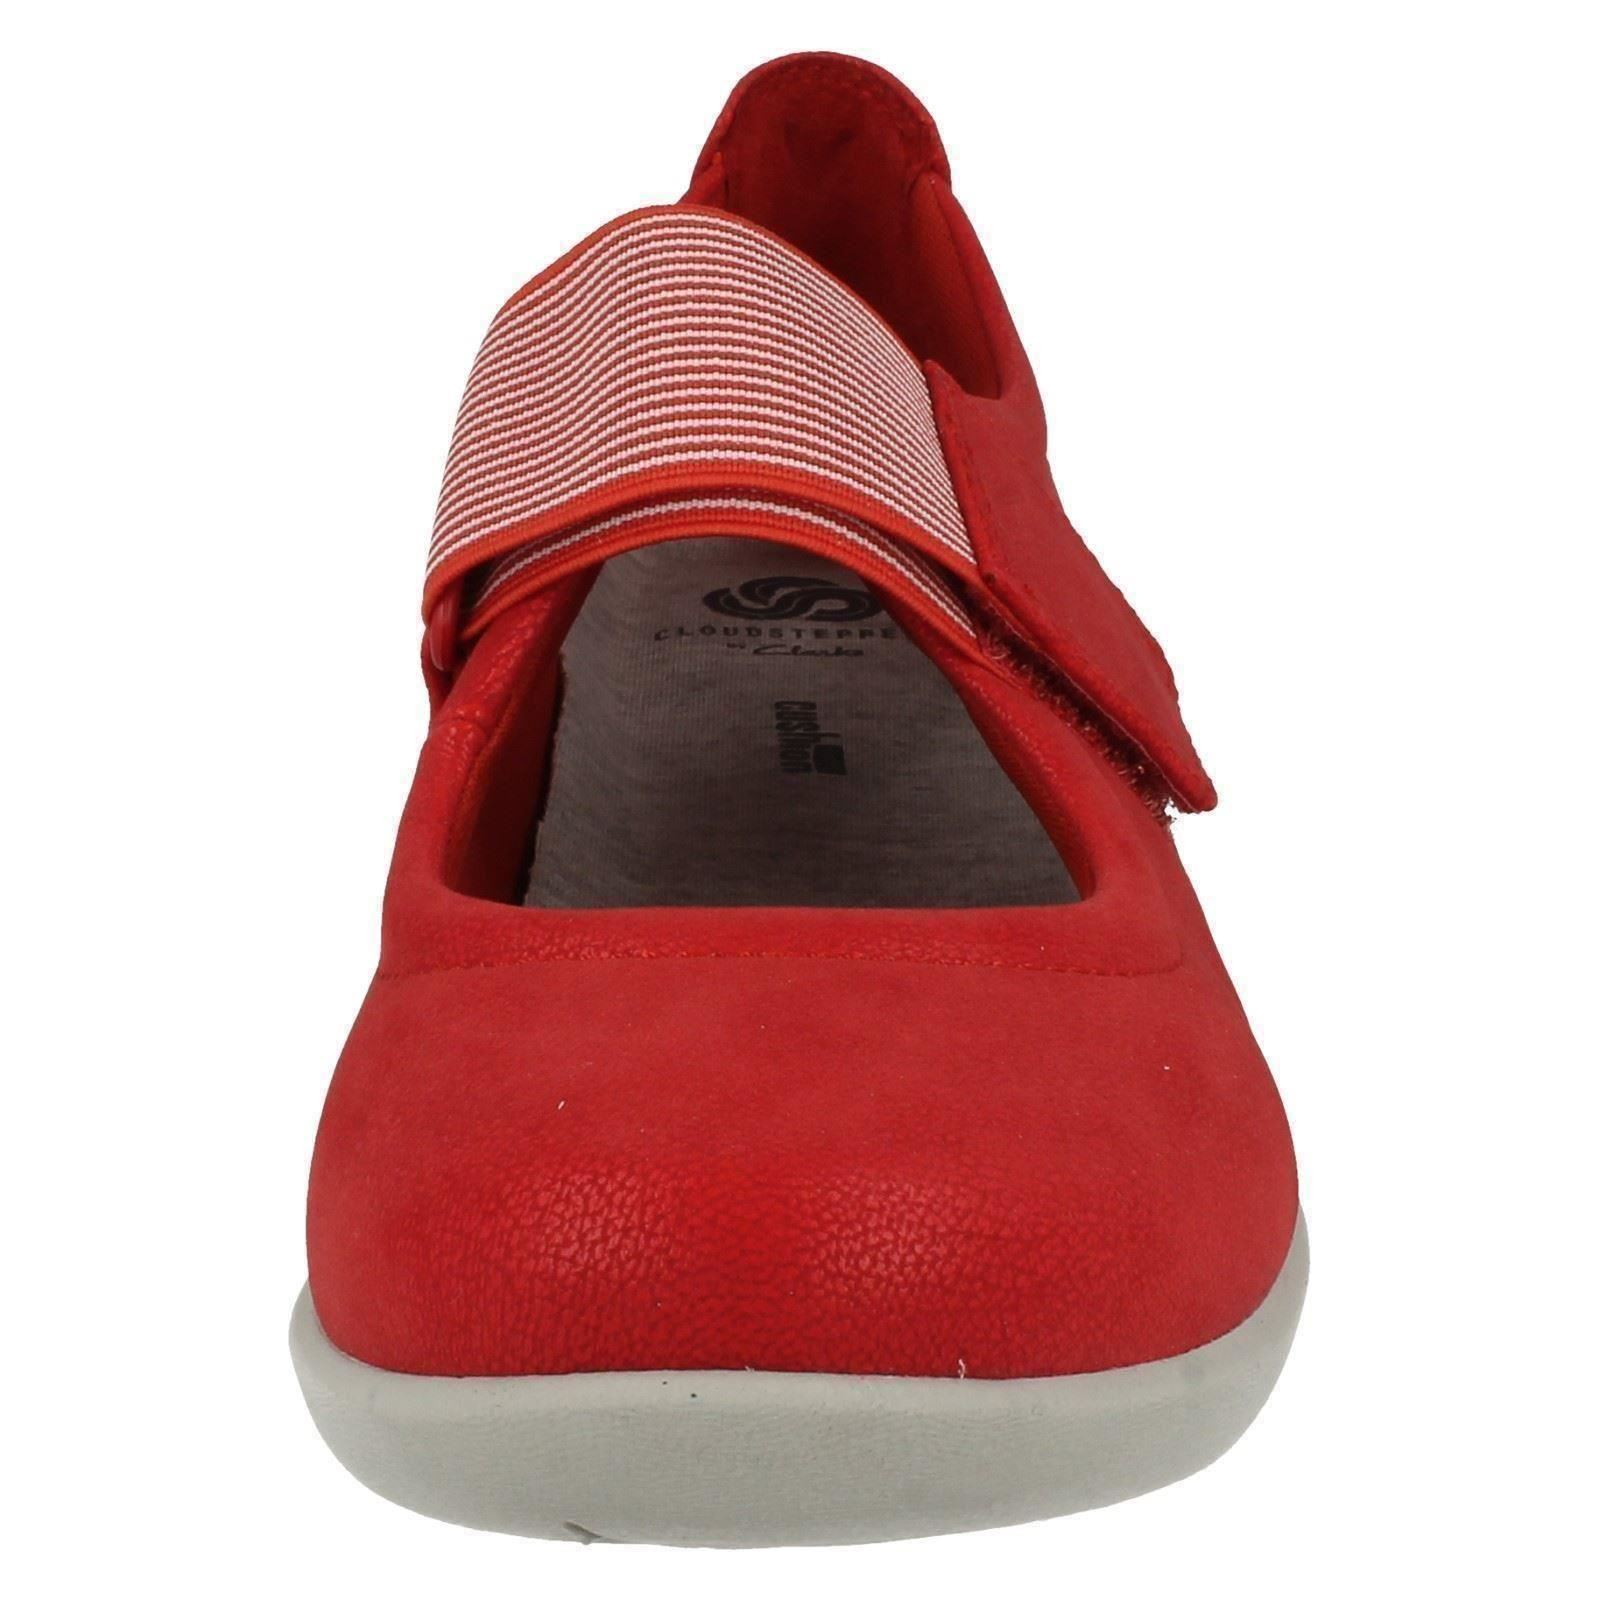 Ladies-Clarks-Cloudsteppers-Casual-Shoes-039-Sillian-Cala-039